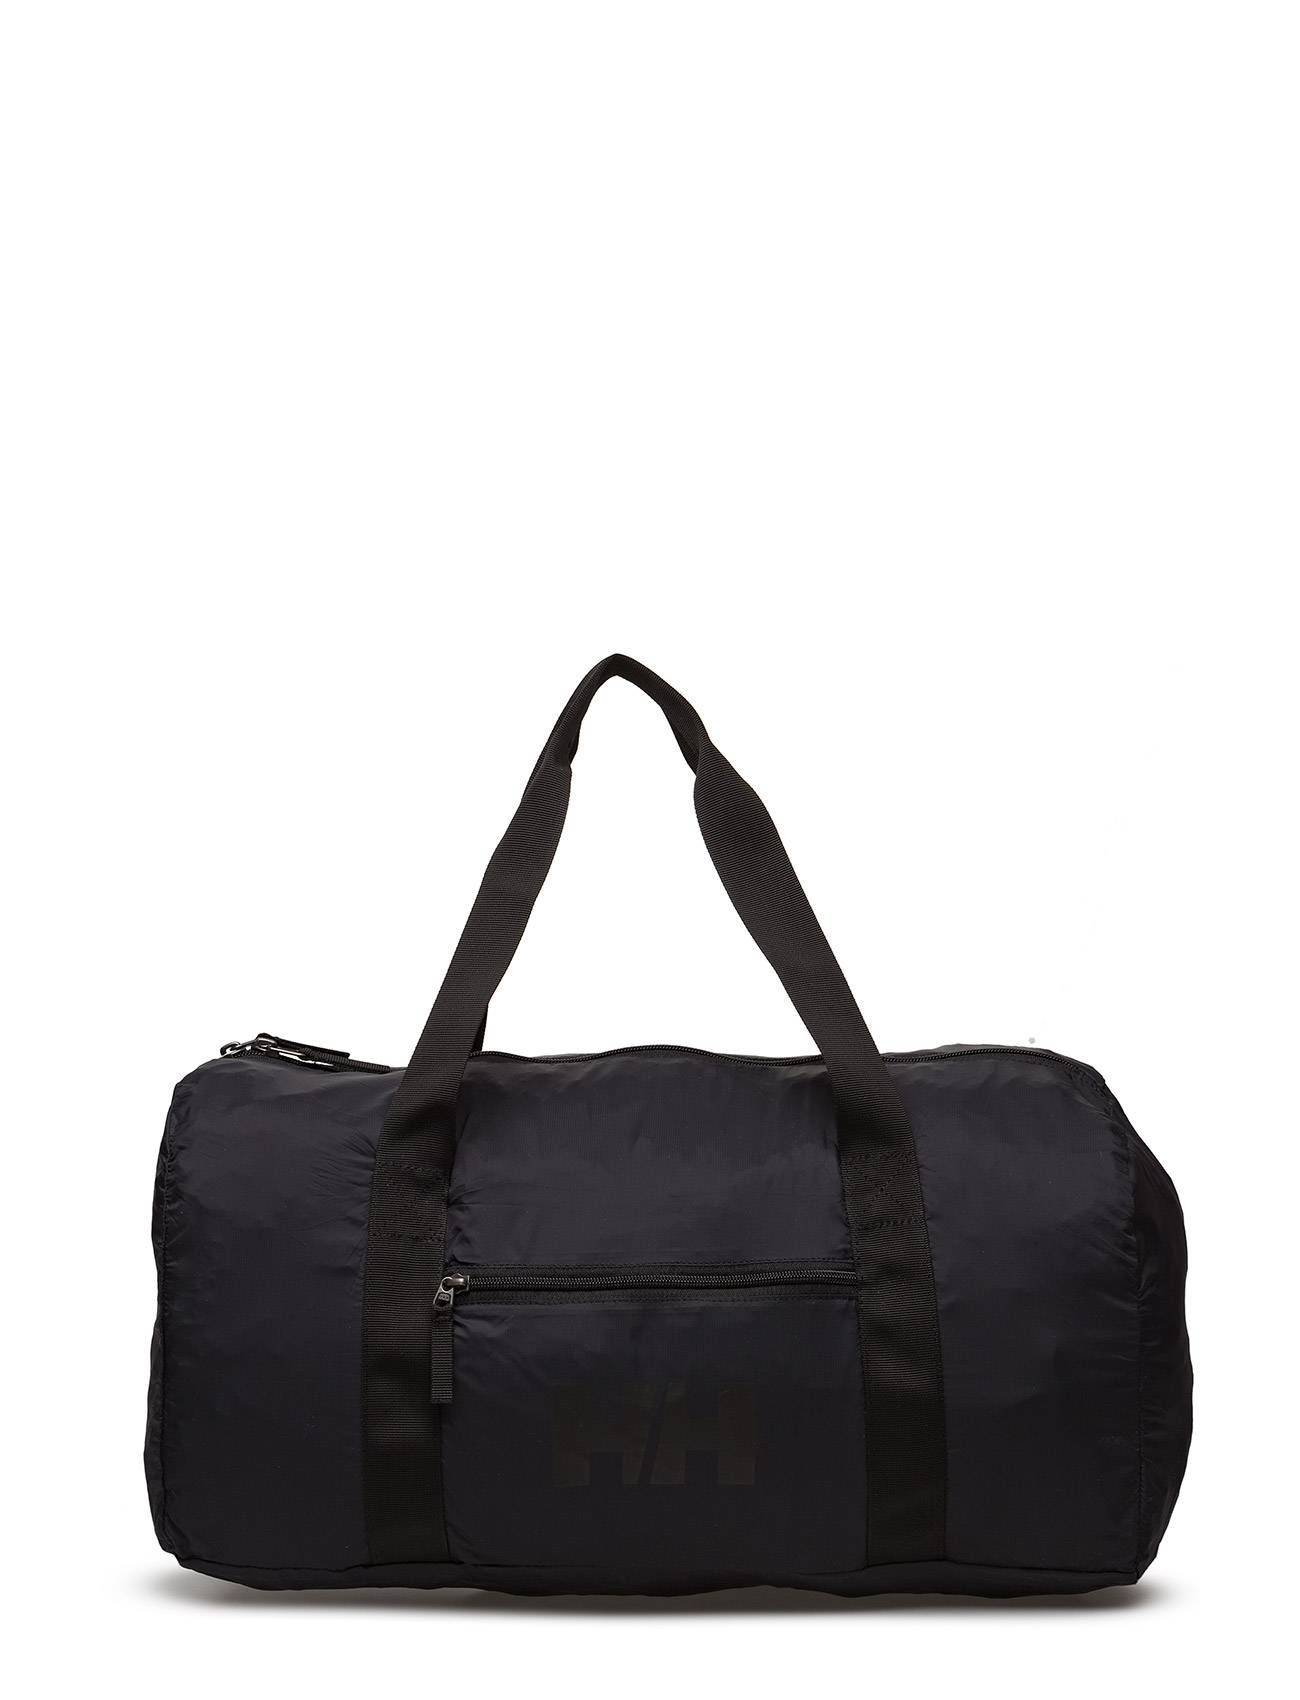 Helly Hansen New Packable Bag Small